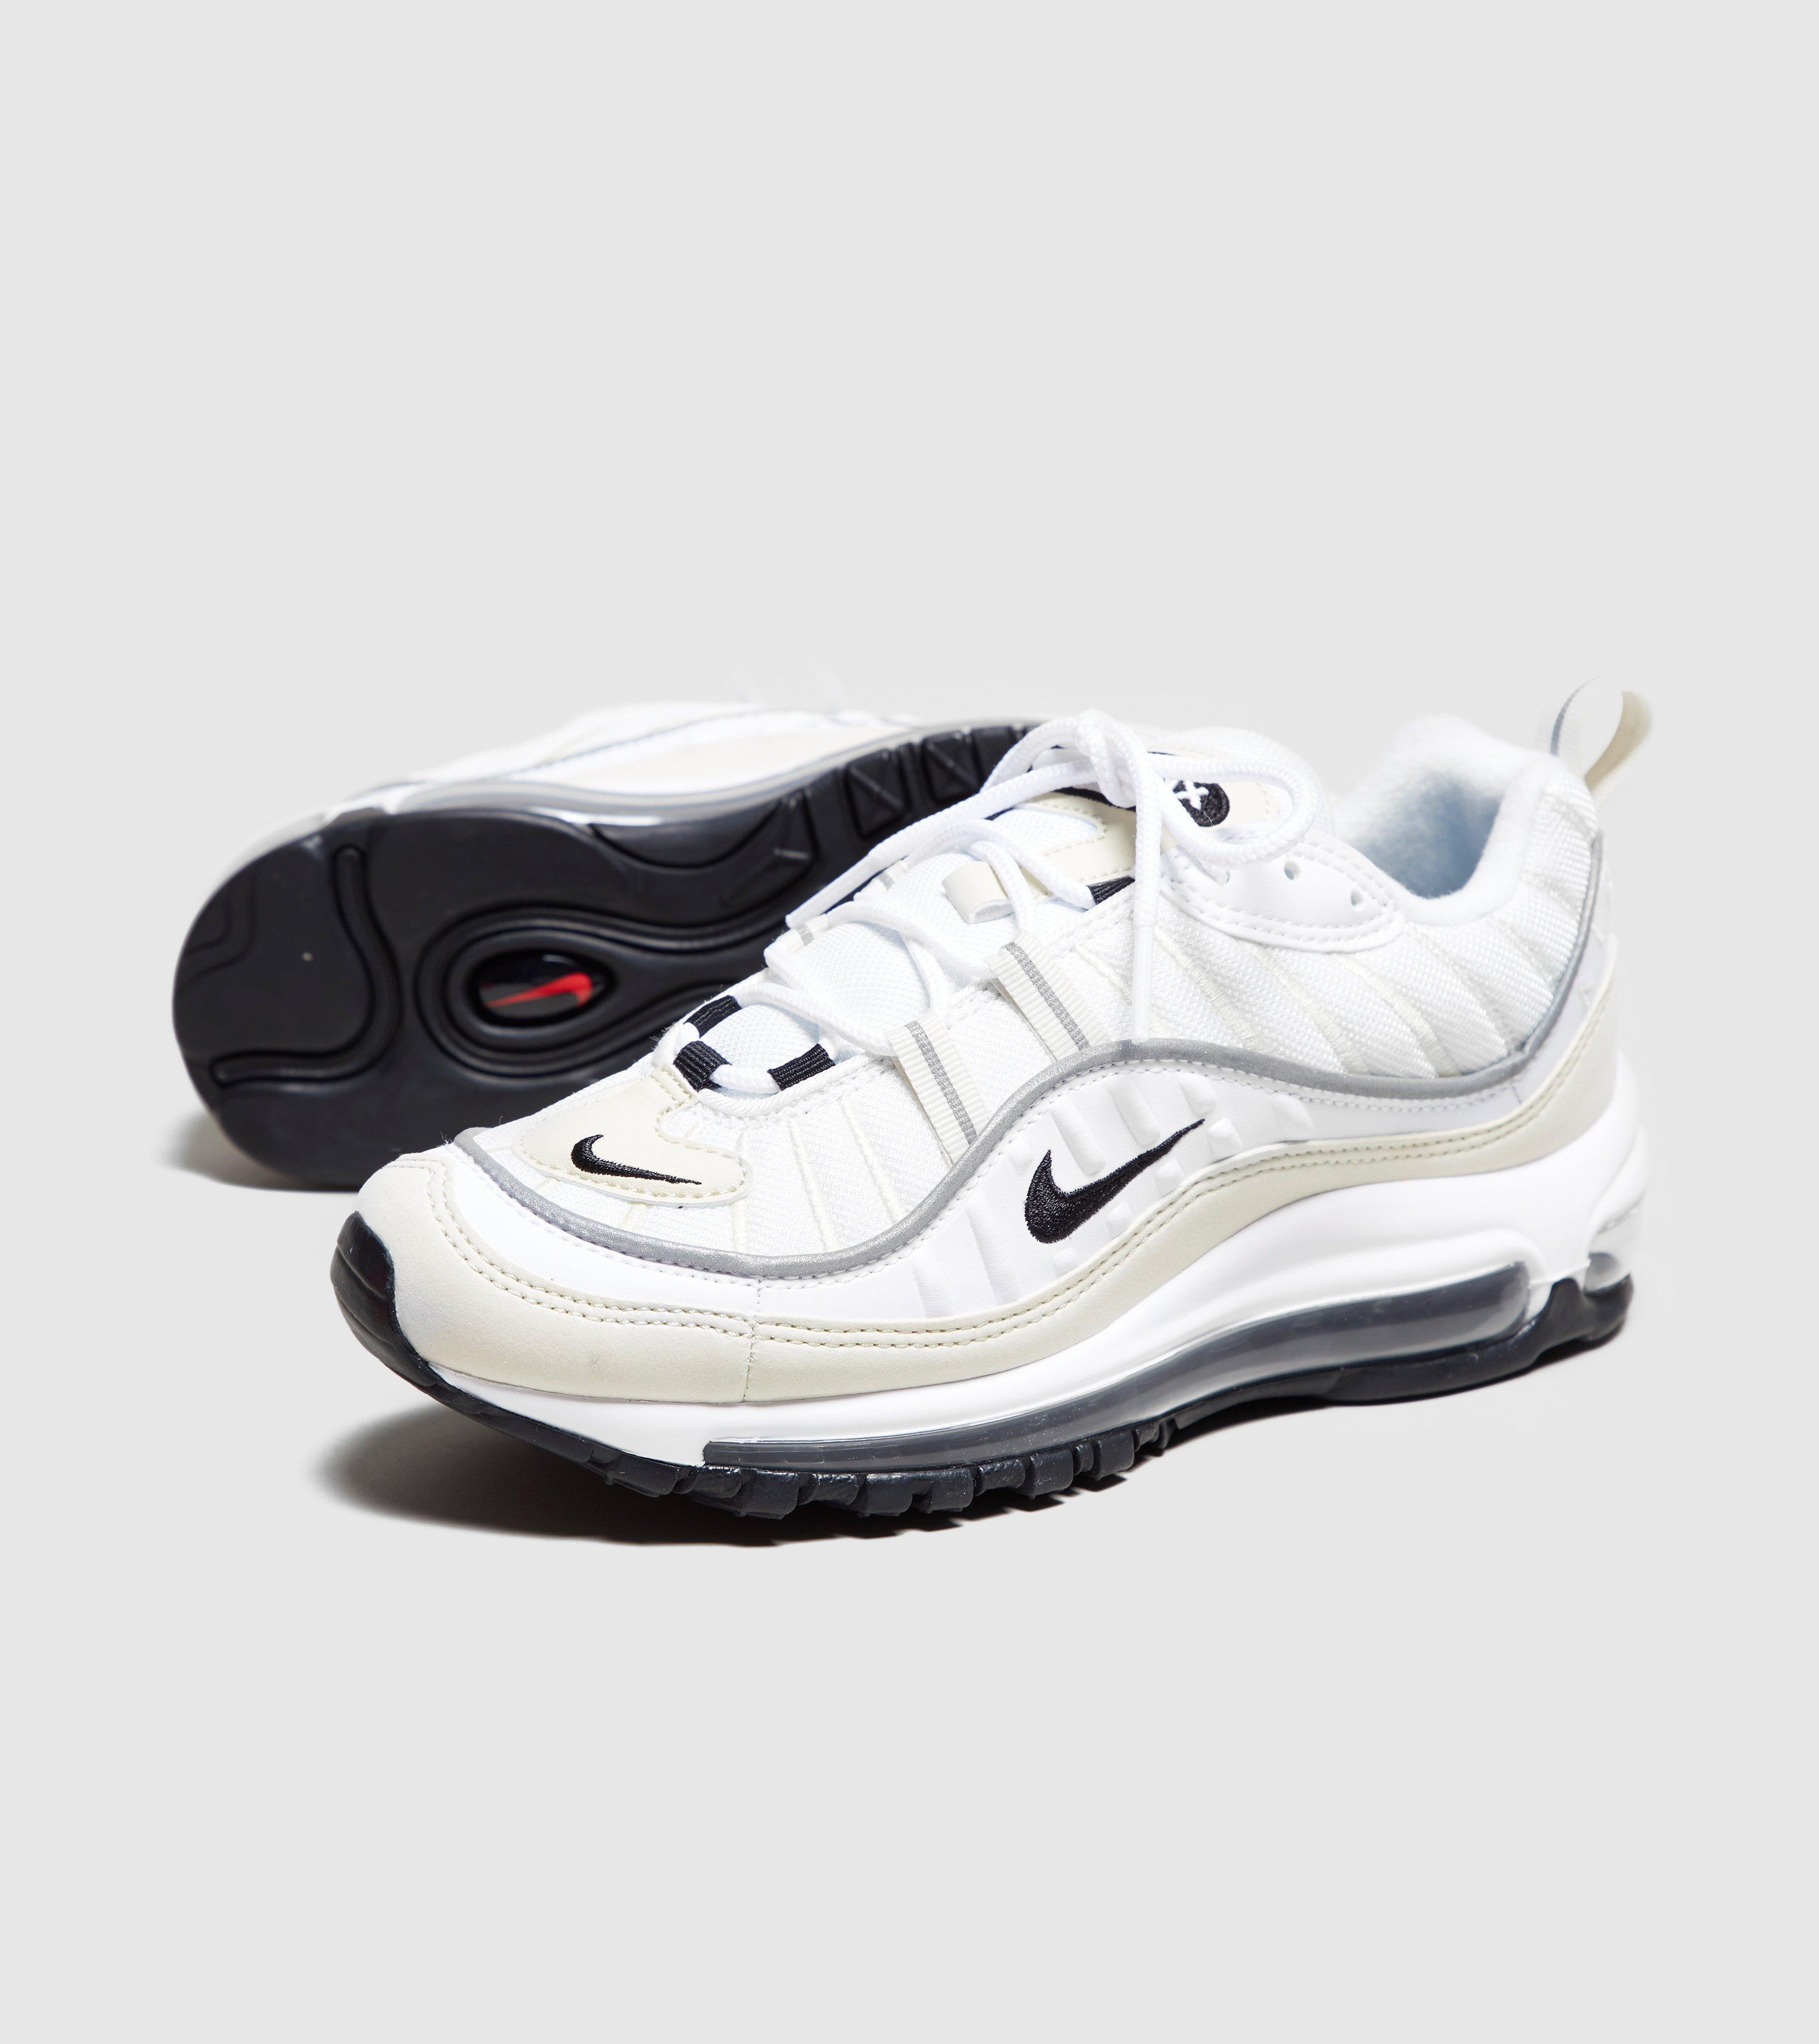 wholesale dealer b913b afaf8 White Air Max 98 'fossil' Women's